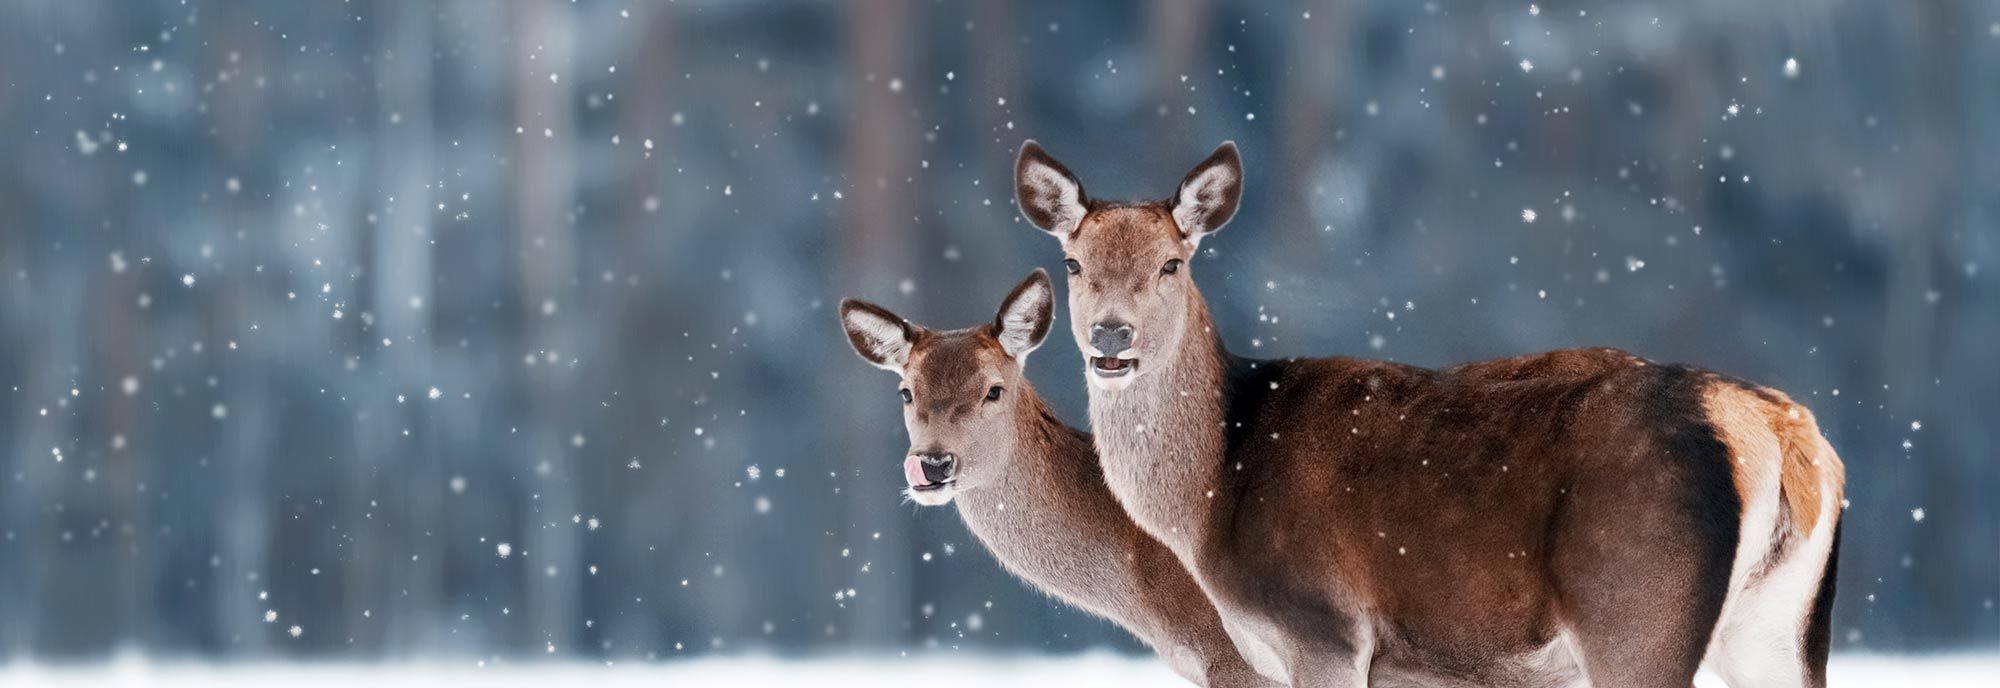 Two deer in snow - banner for Deer Repellent Page